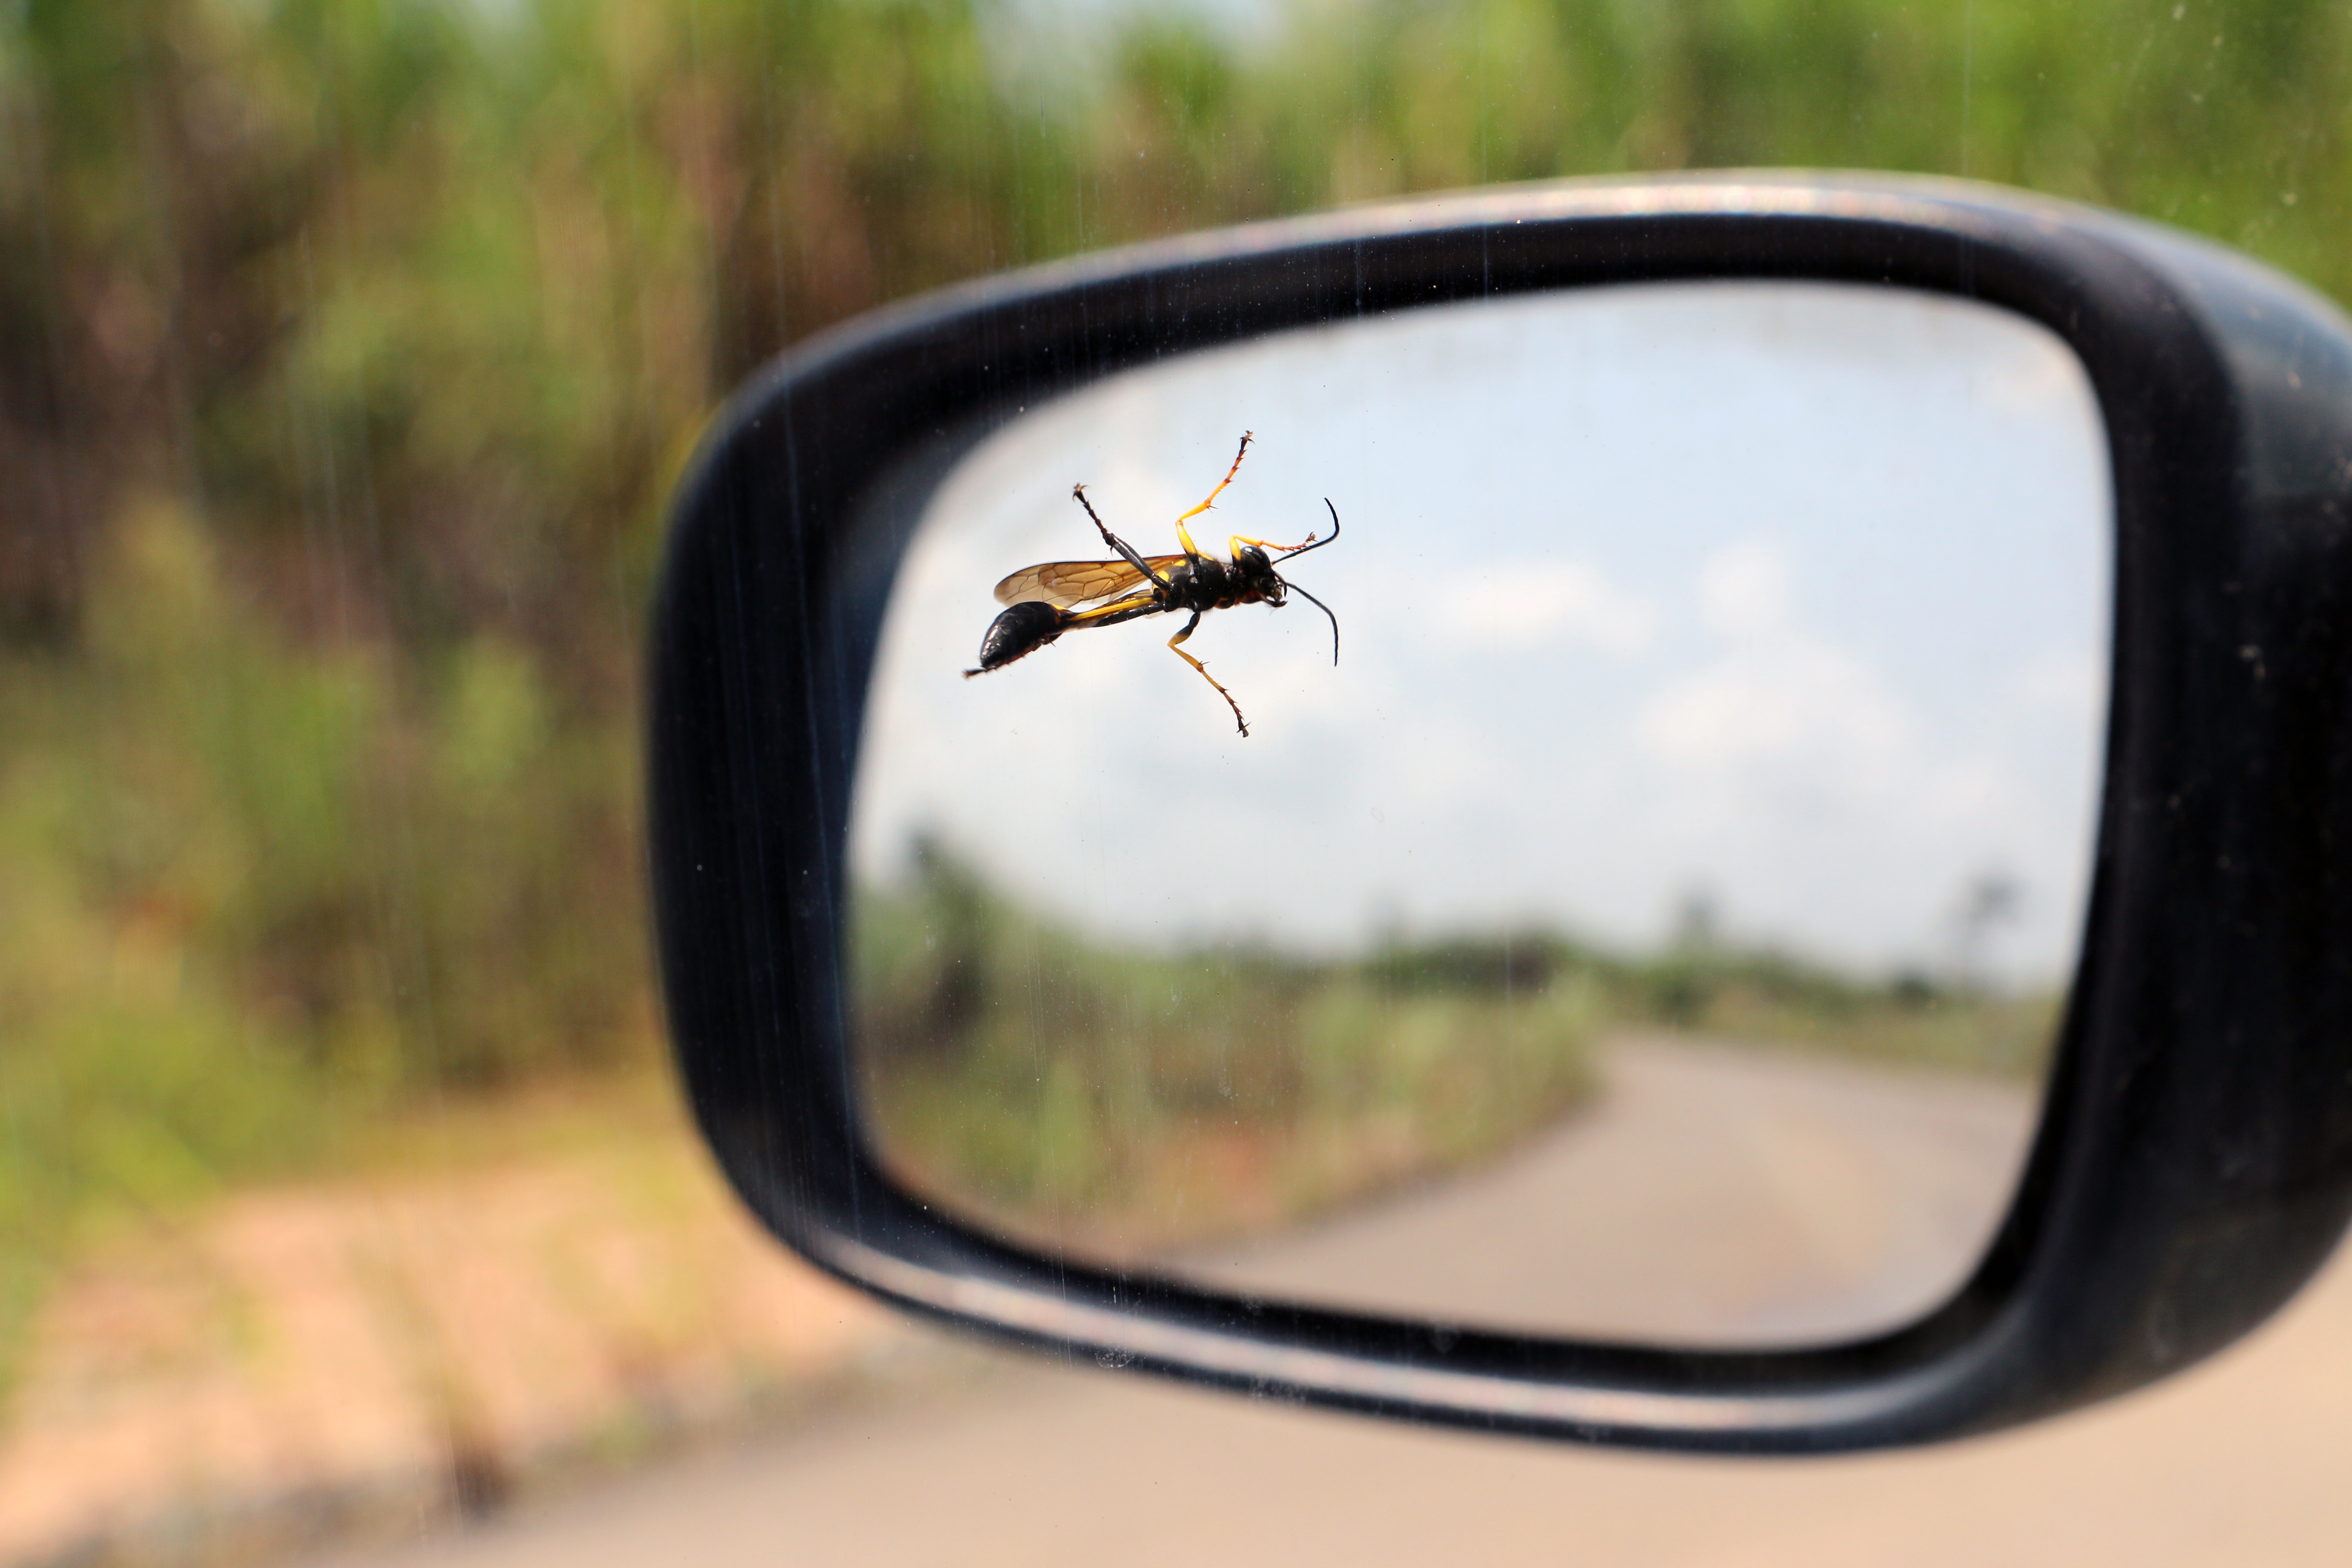 How To Remove Bugs From Your Car